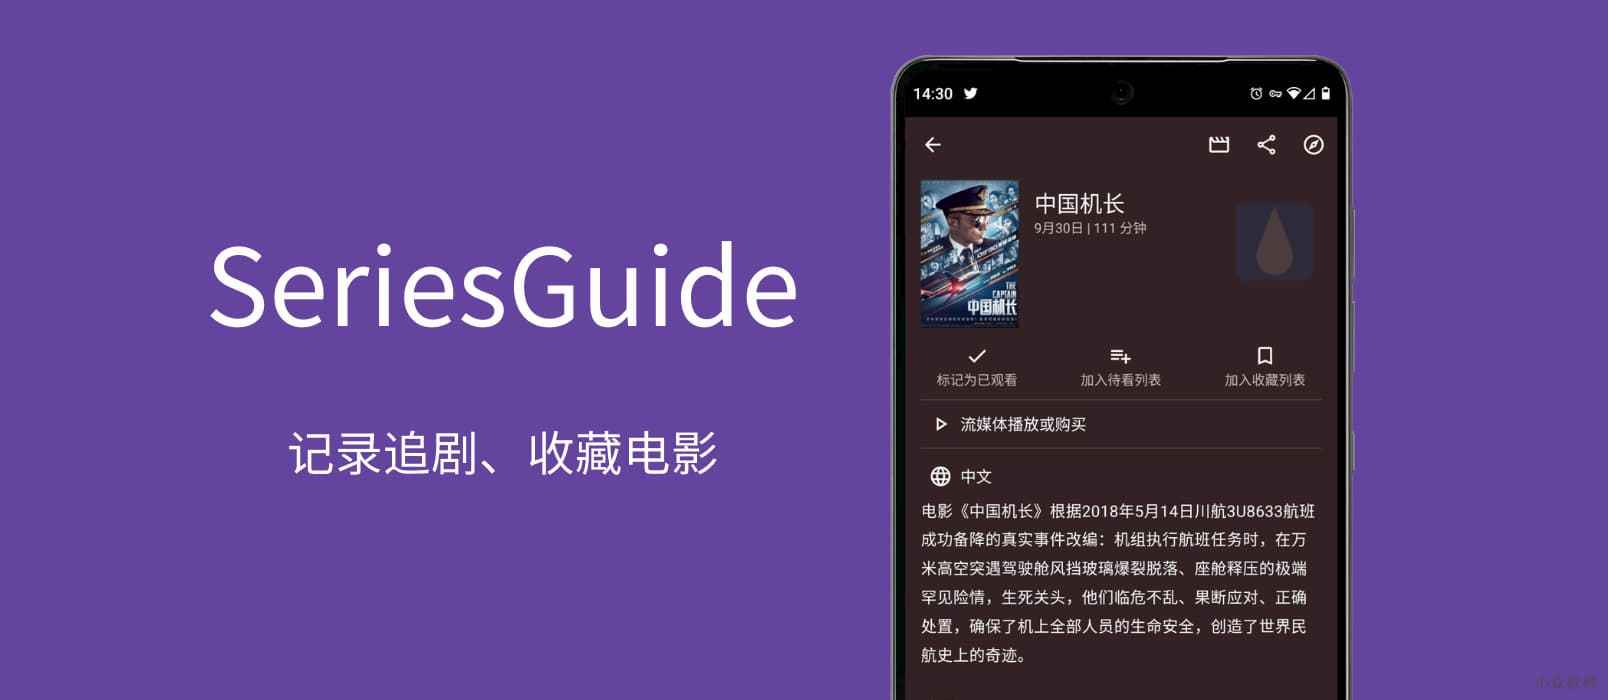 SeriesGuide - 收藏、记录追剧进度、观看过的电影[Android] 1